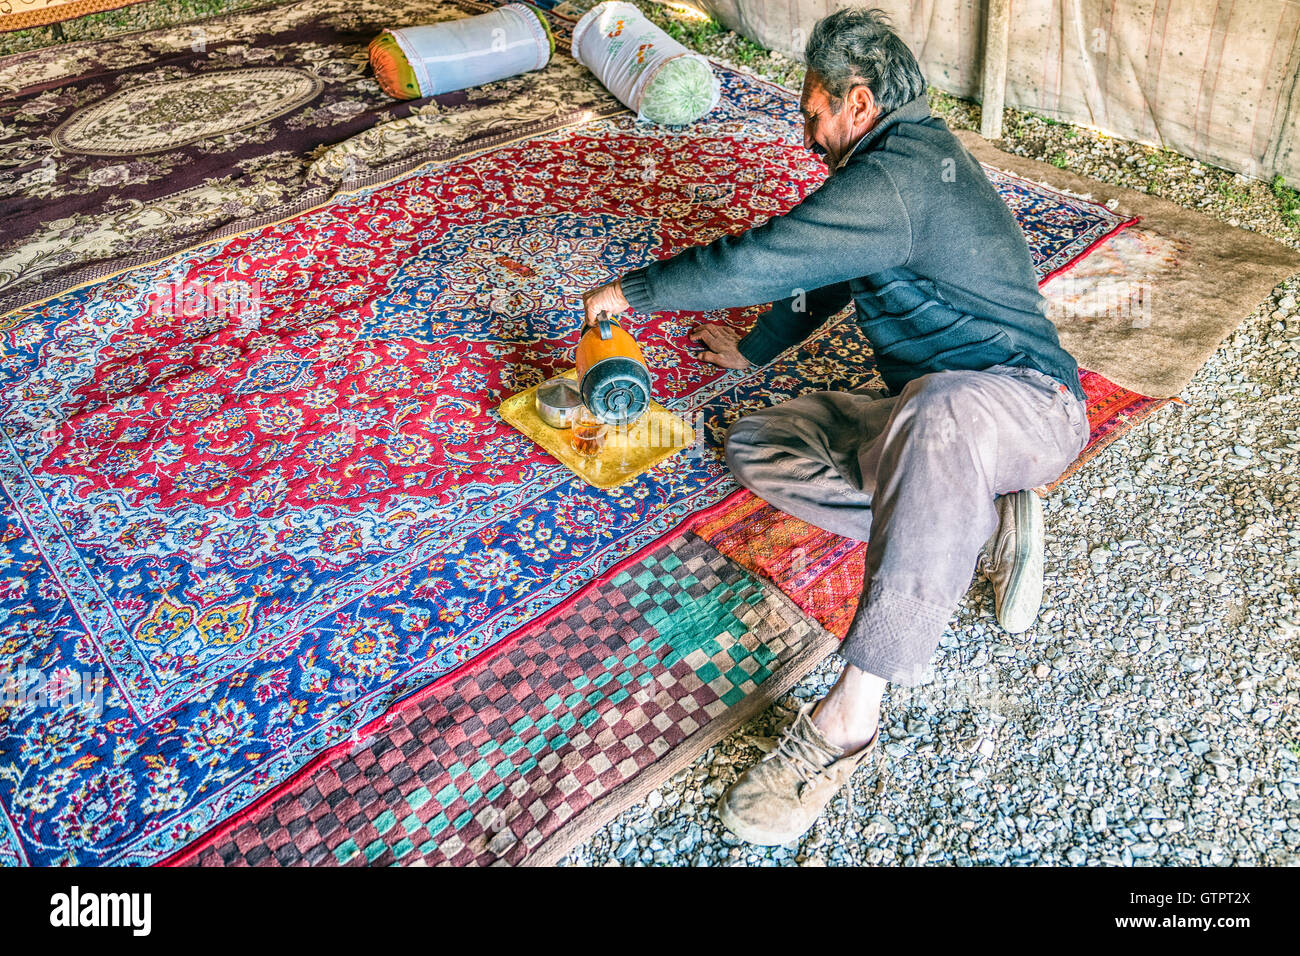 the basseri of iran a pastoral An ethnographic study of the nomadic basseri tribe and the impact of pastoralism on  the basseri of iran:  the basseri's pastoral mode of subsistence impacted.